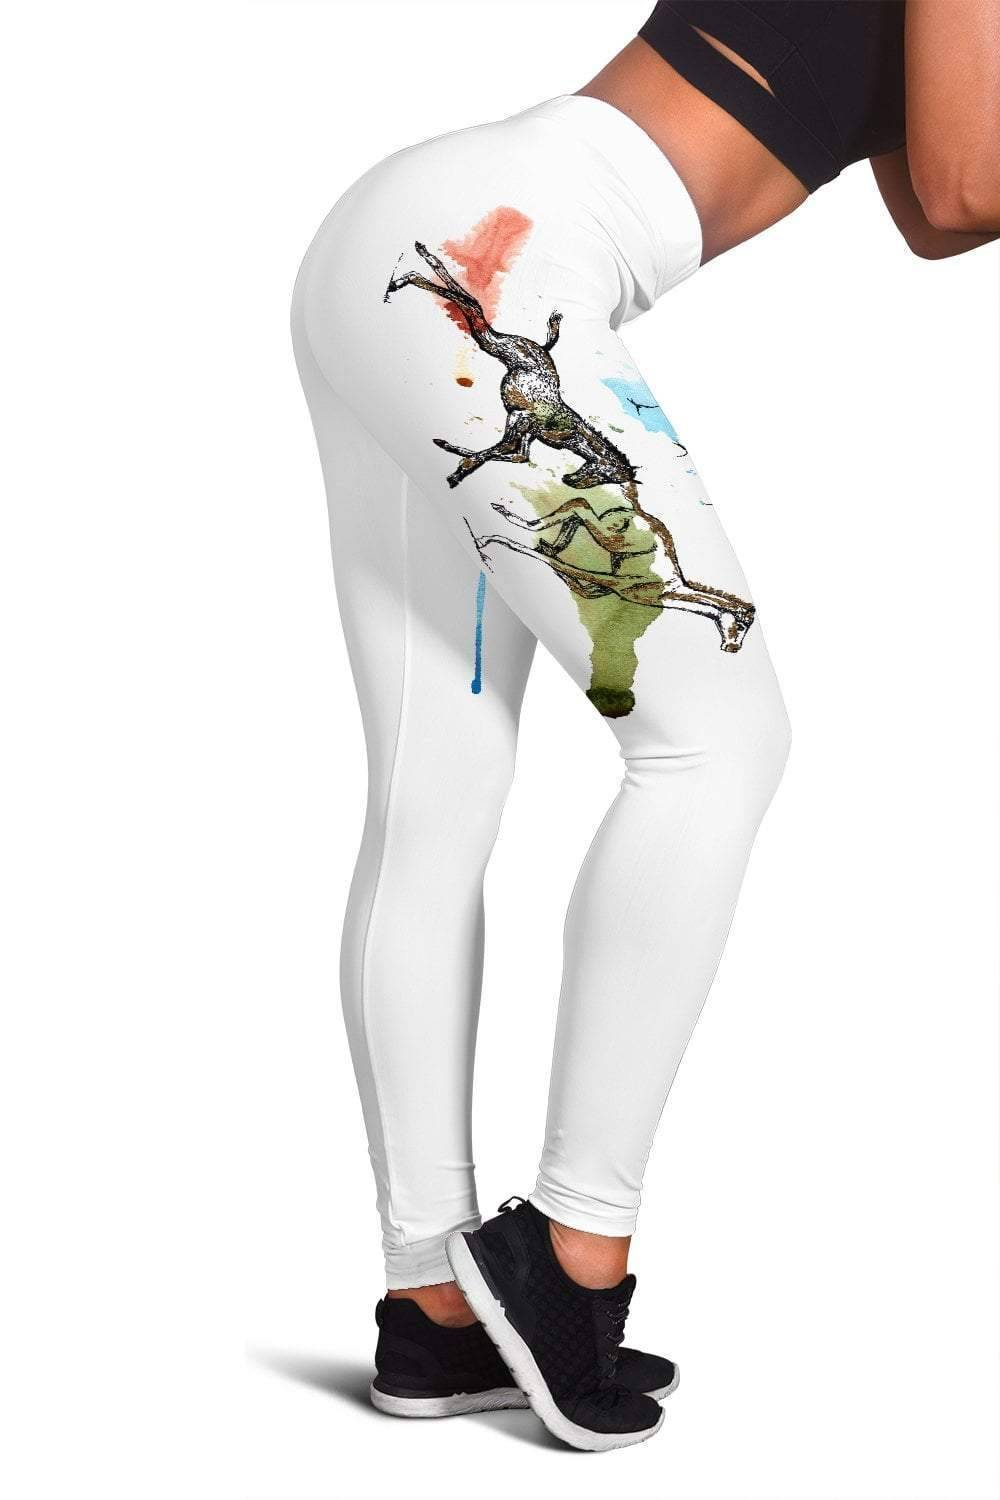 Running Horse Leggings (White)  -  Women's Leggings / XS  -  Leggings  - SNS Outlet